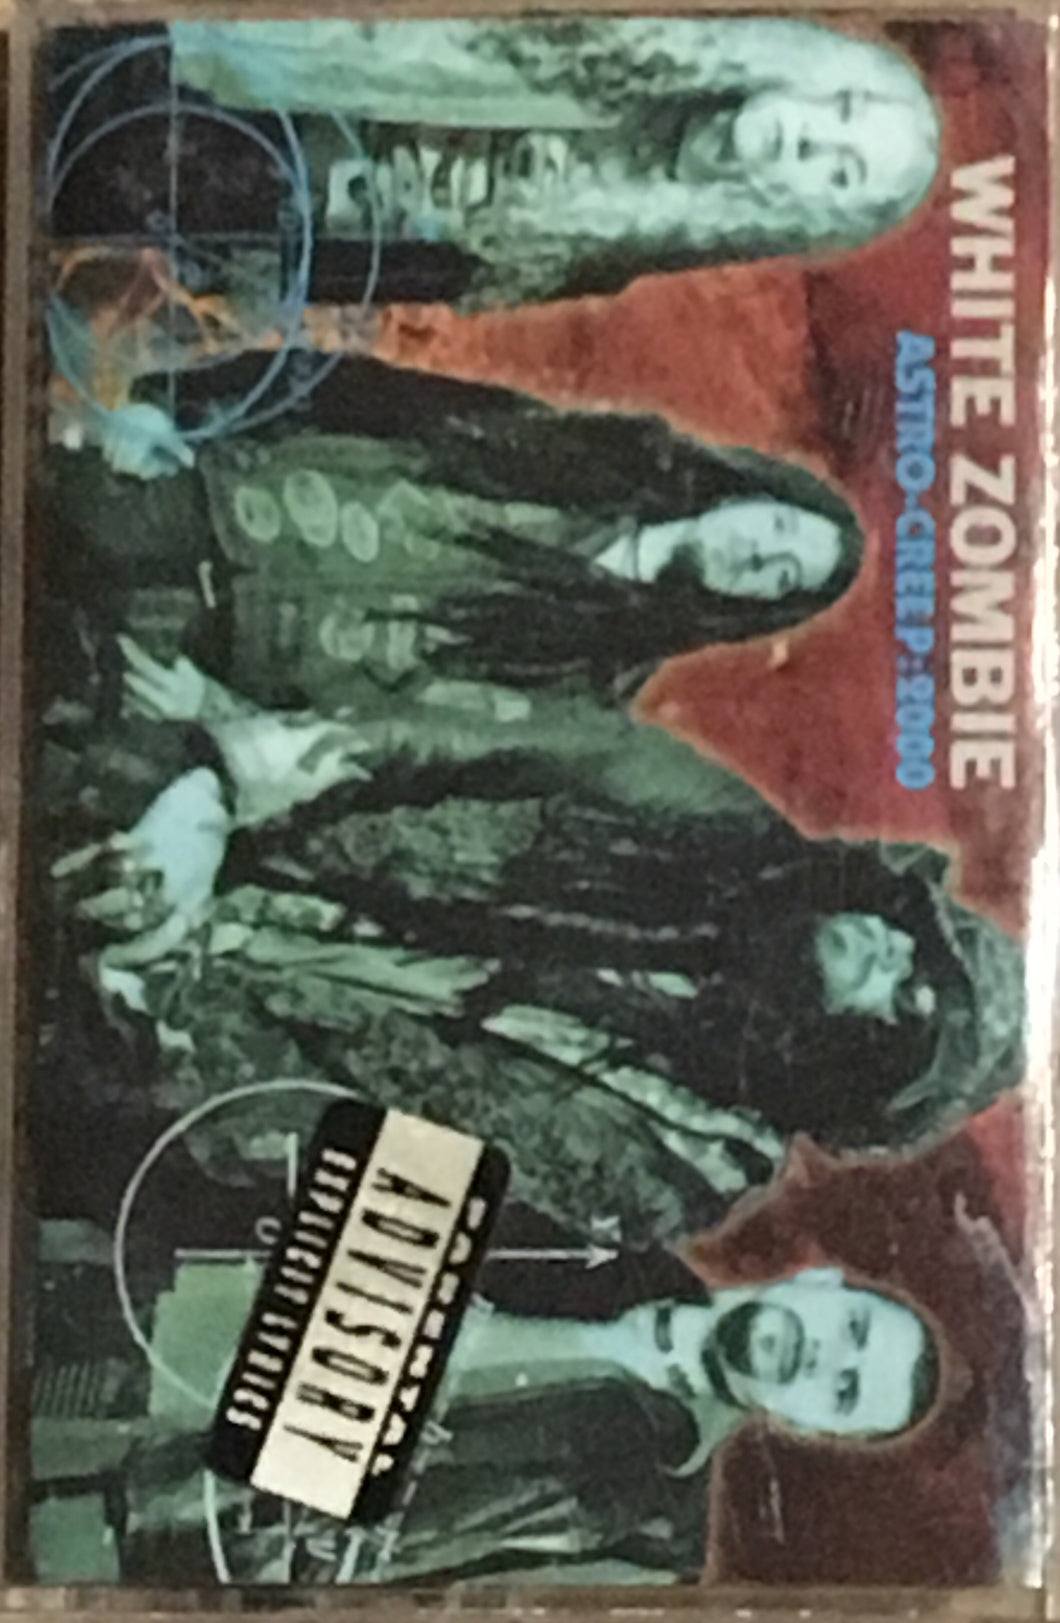 White Zombie Astro Creep 2000 Cassette